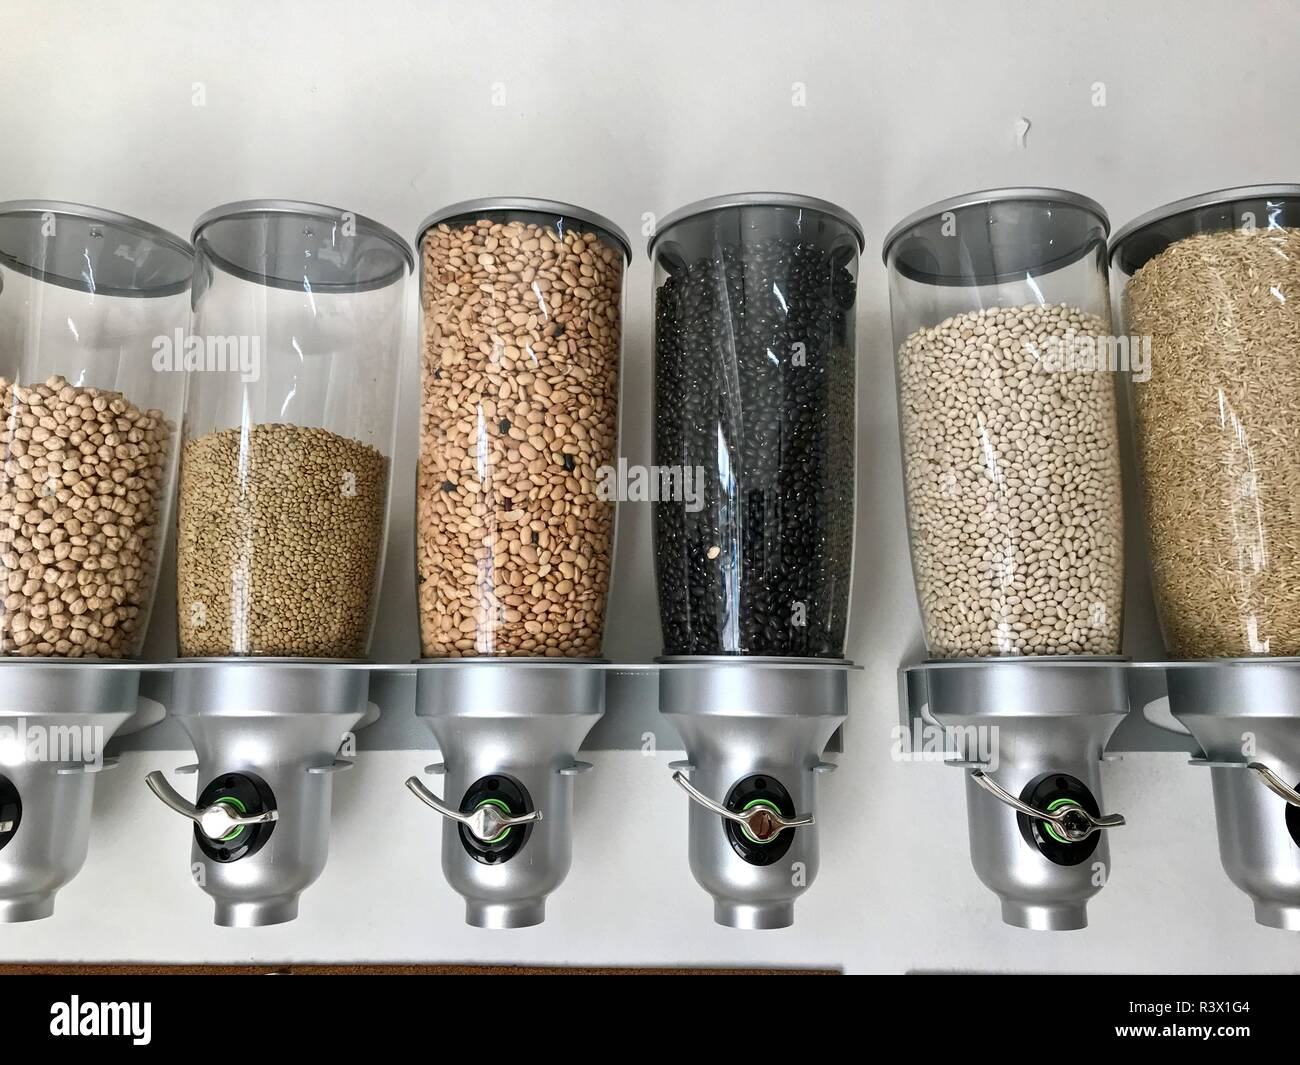 Wall mounted containers at a zero waste store full of lentils, beans, chickpeas and rice where you can refill your own containers. - Stock Image